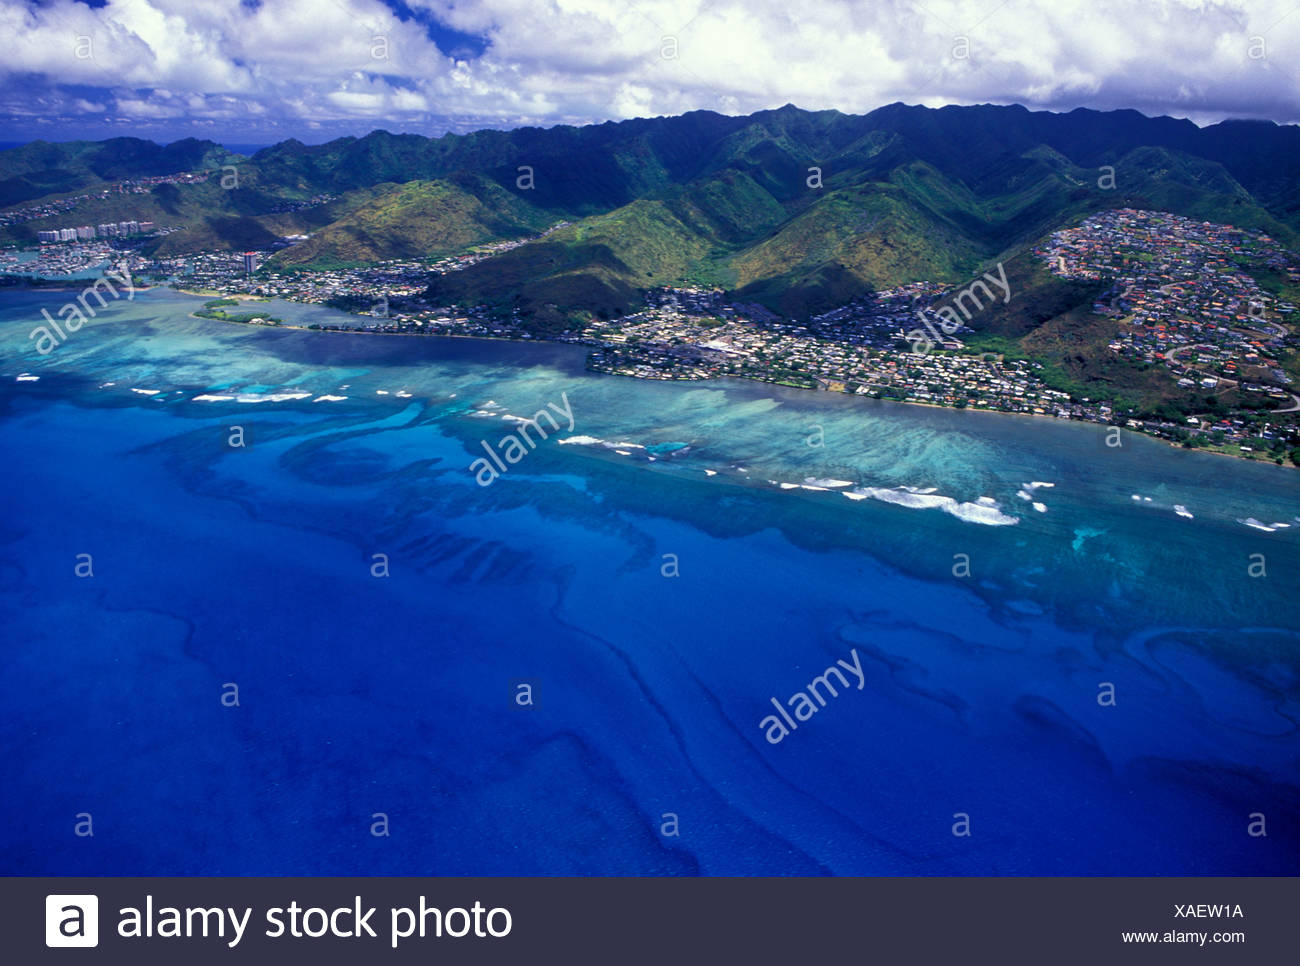 Aerial view of east Oahu with homes along the hillside mountains and wide sweeping view of the blue pacific ocean - Stock Image